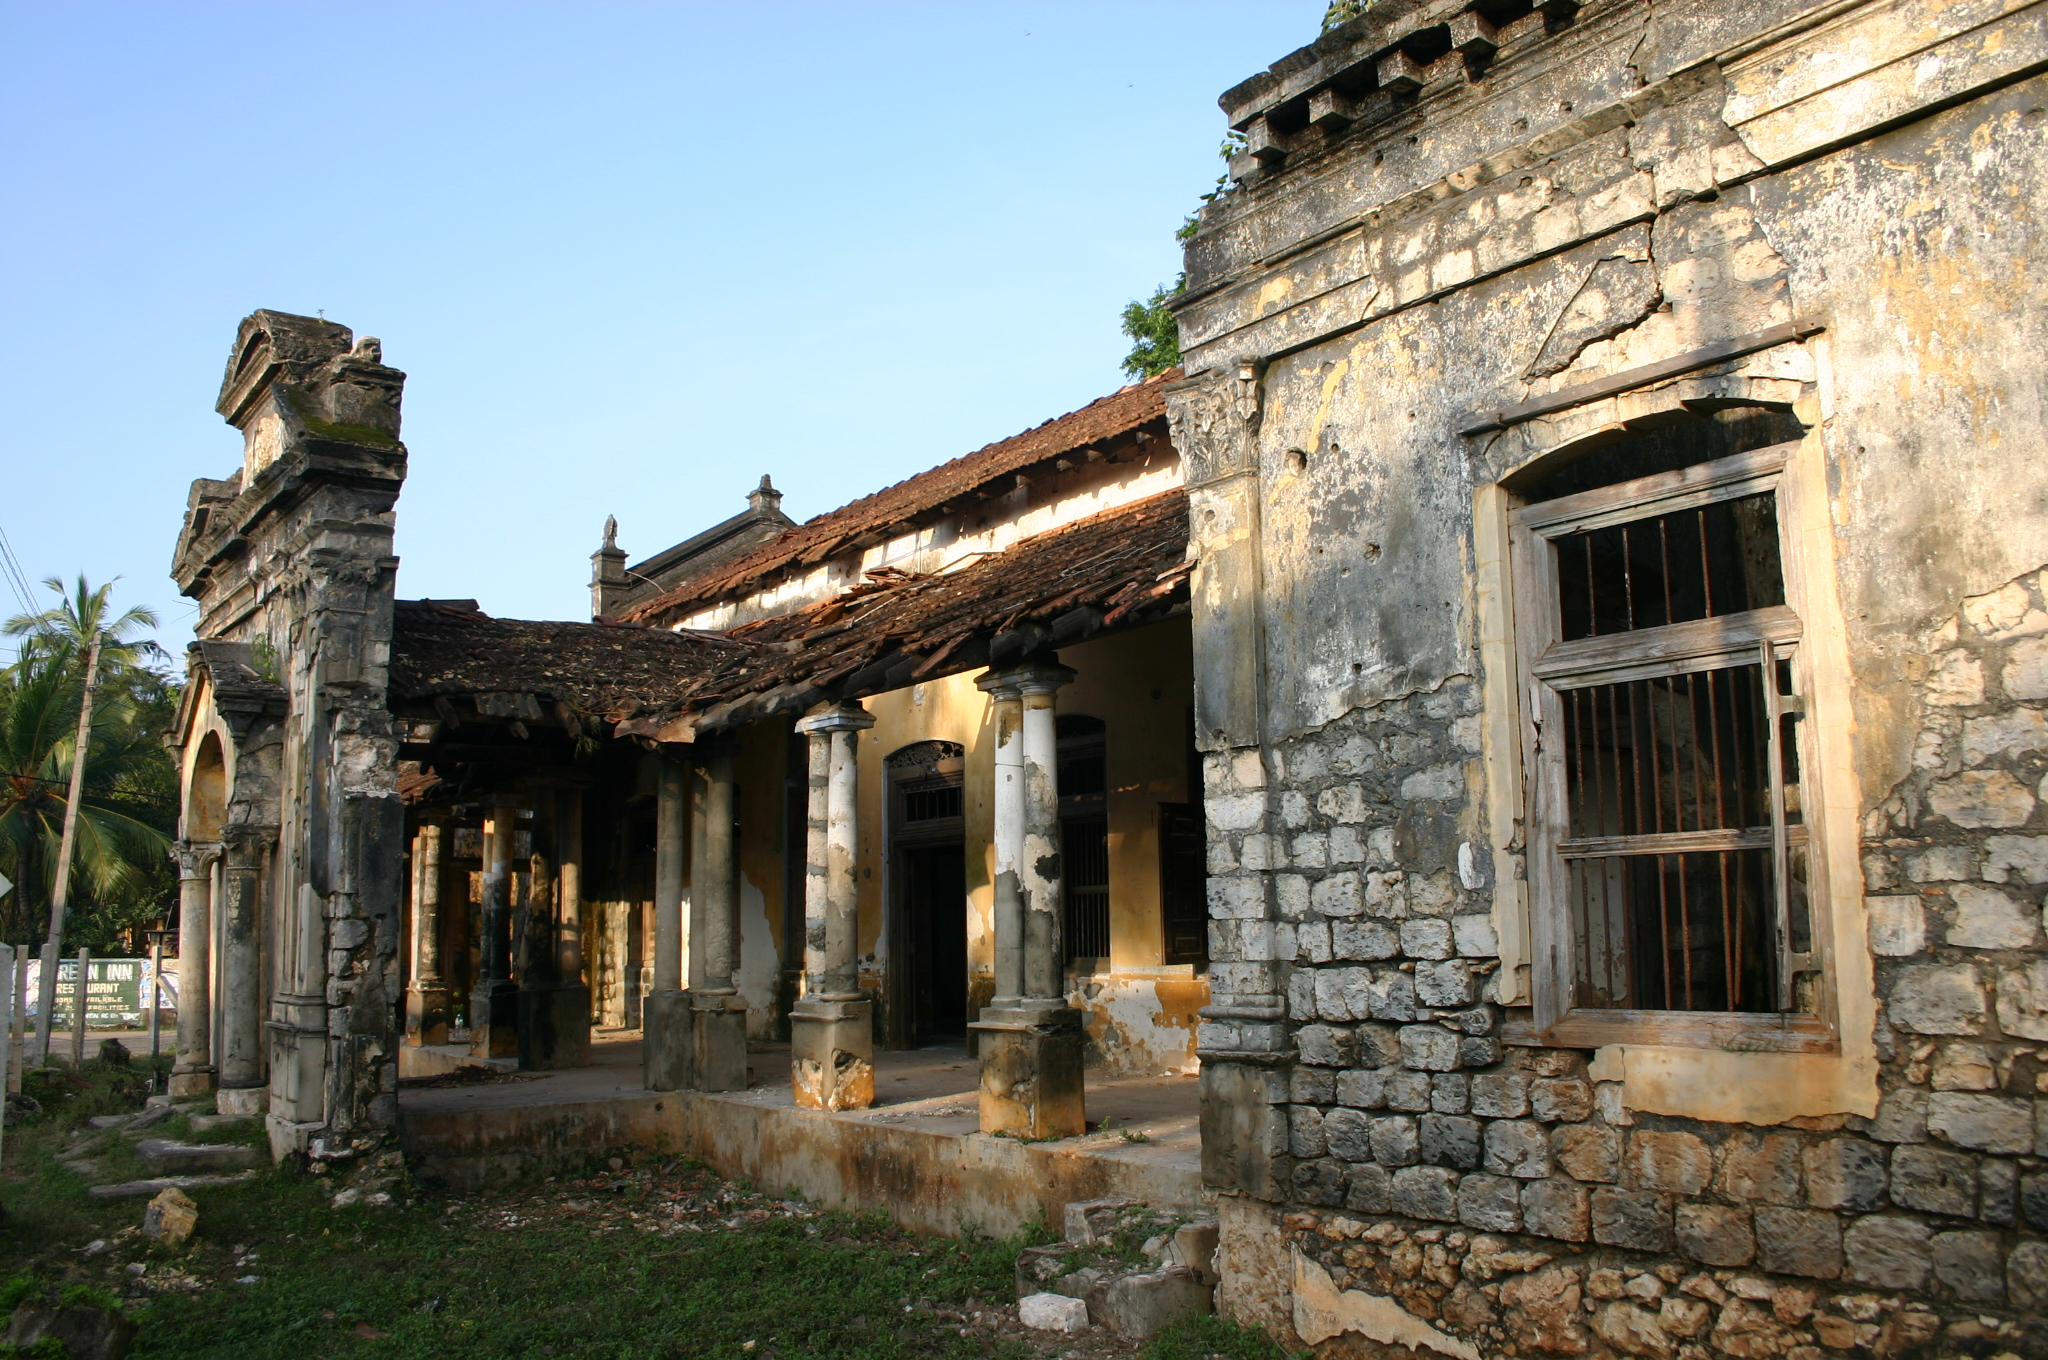 Figure 1. An abandoned house on Kandy Road, Jaffna, Sri Lanka. This place testifies to the violence that affected northern Sri Lanka during three decades of bitter civil war between government forces and Tamil separatists, where buildings became hostages and victims. Photograph by Anoma Pieris, 2010.